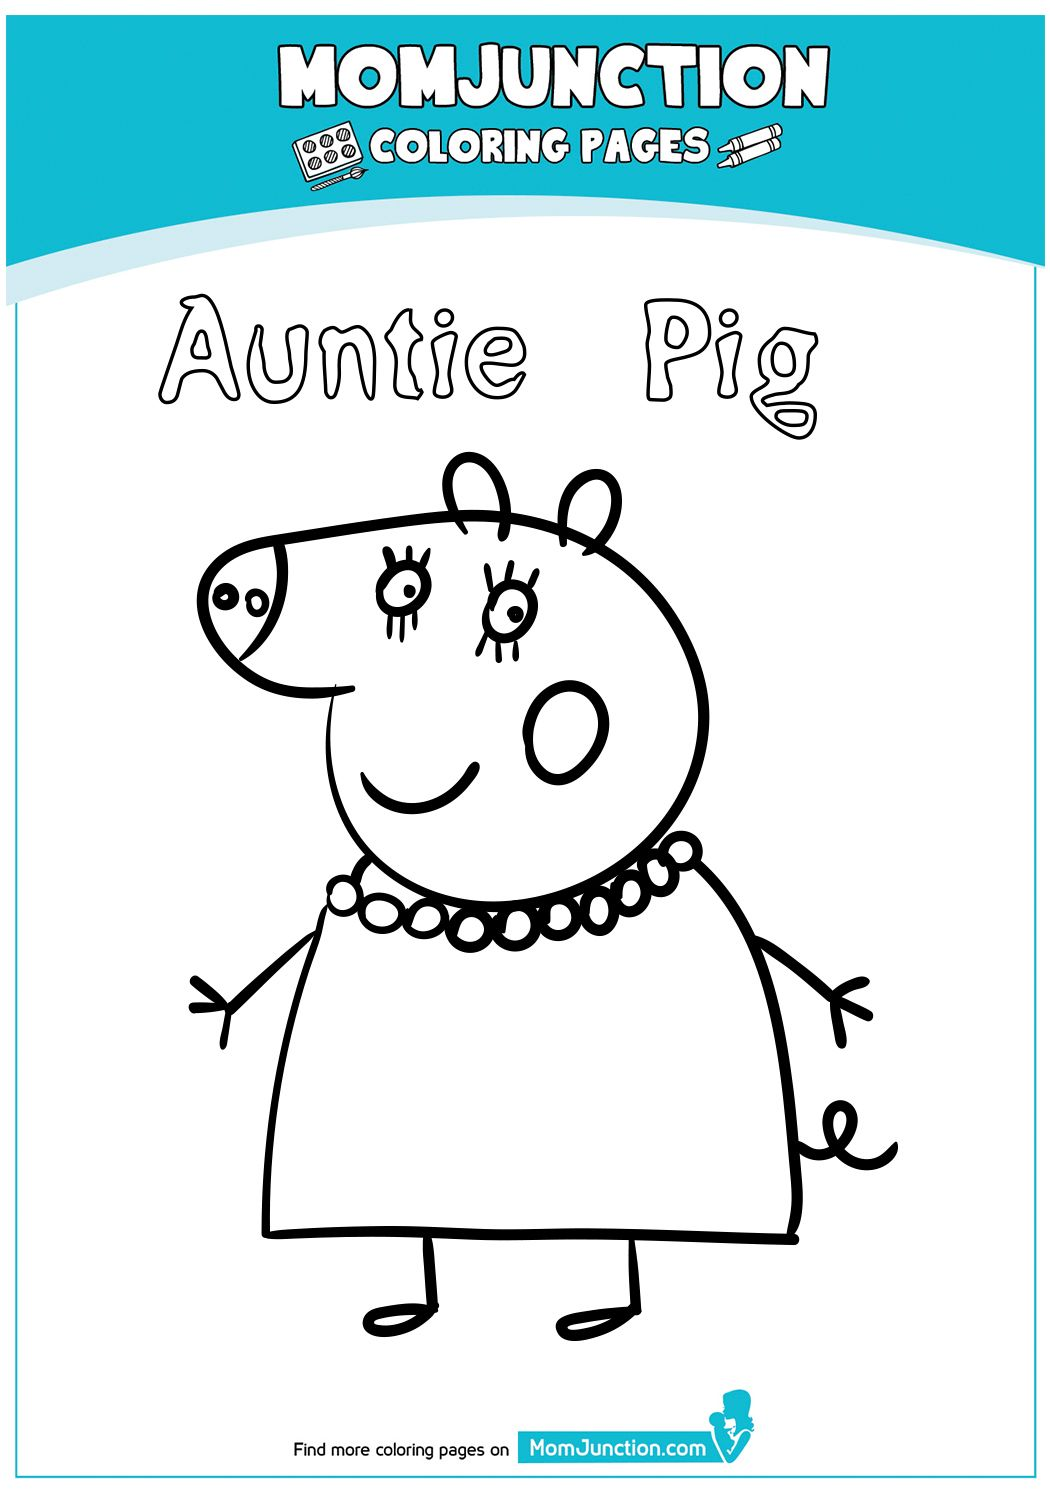 The George Coloring Page In 2020 Peppa Pig Colouring Peppa Pig Coloring Pages Coloring Pages